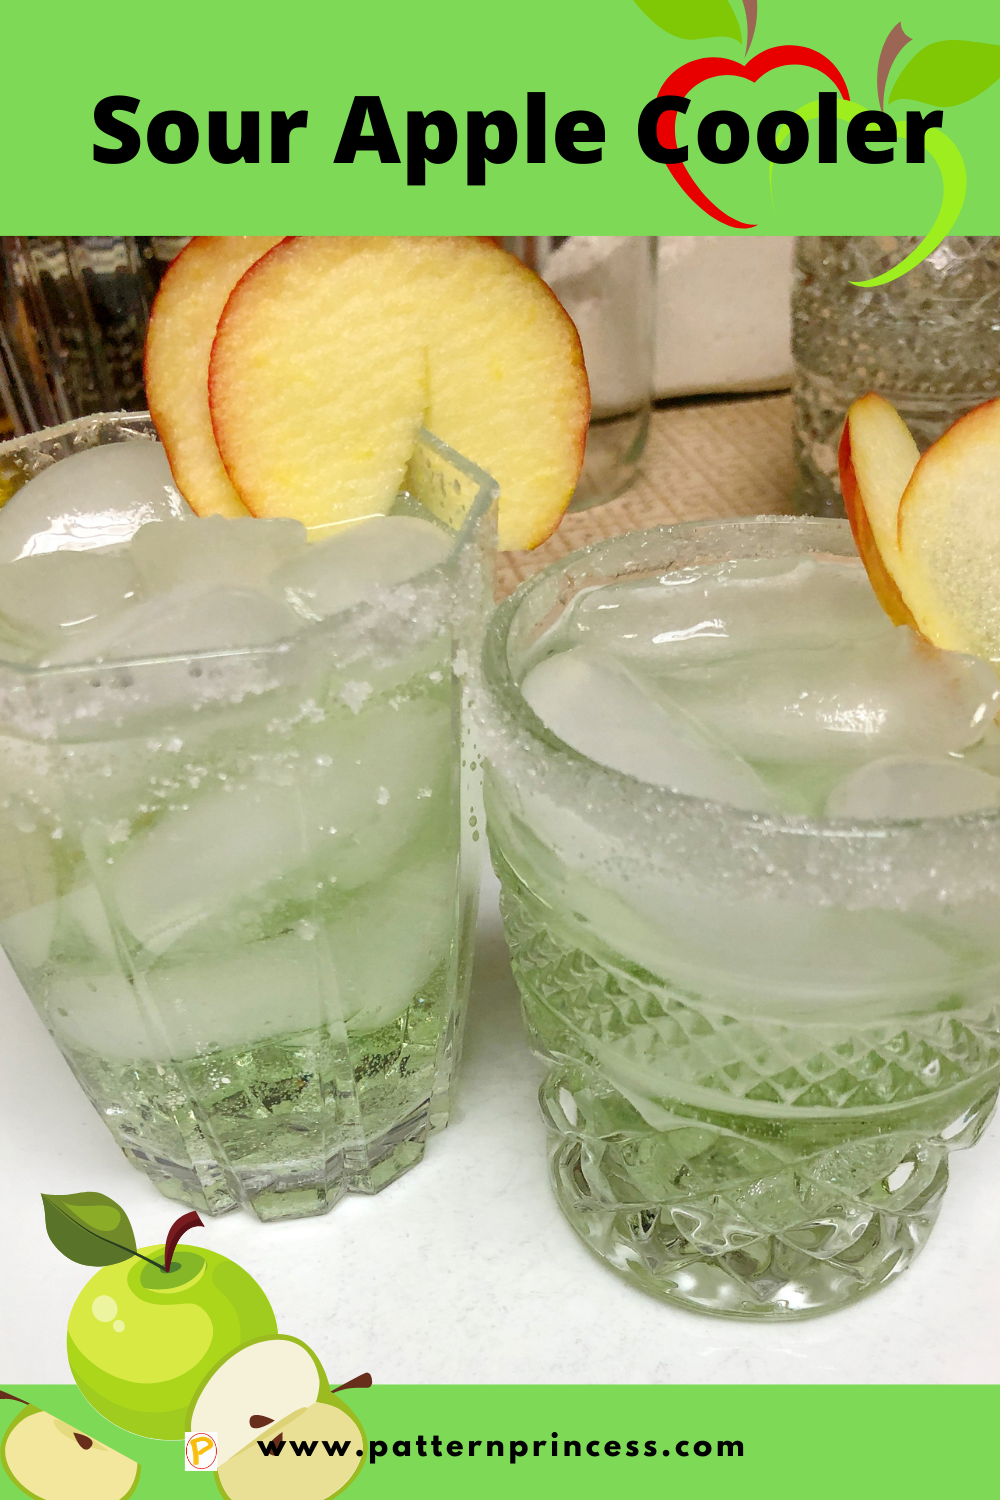 Sour Apple Cooler